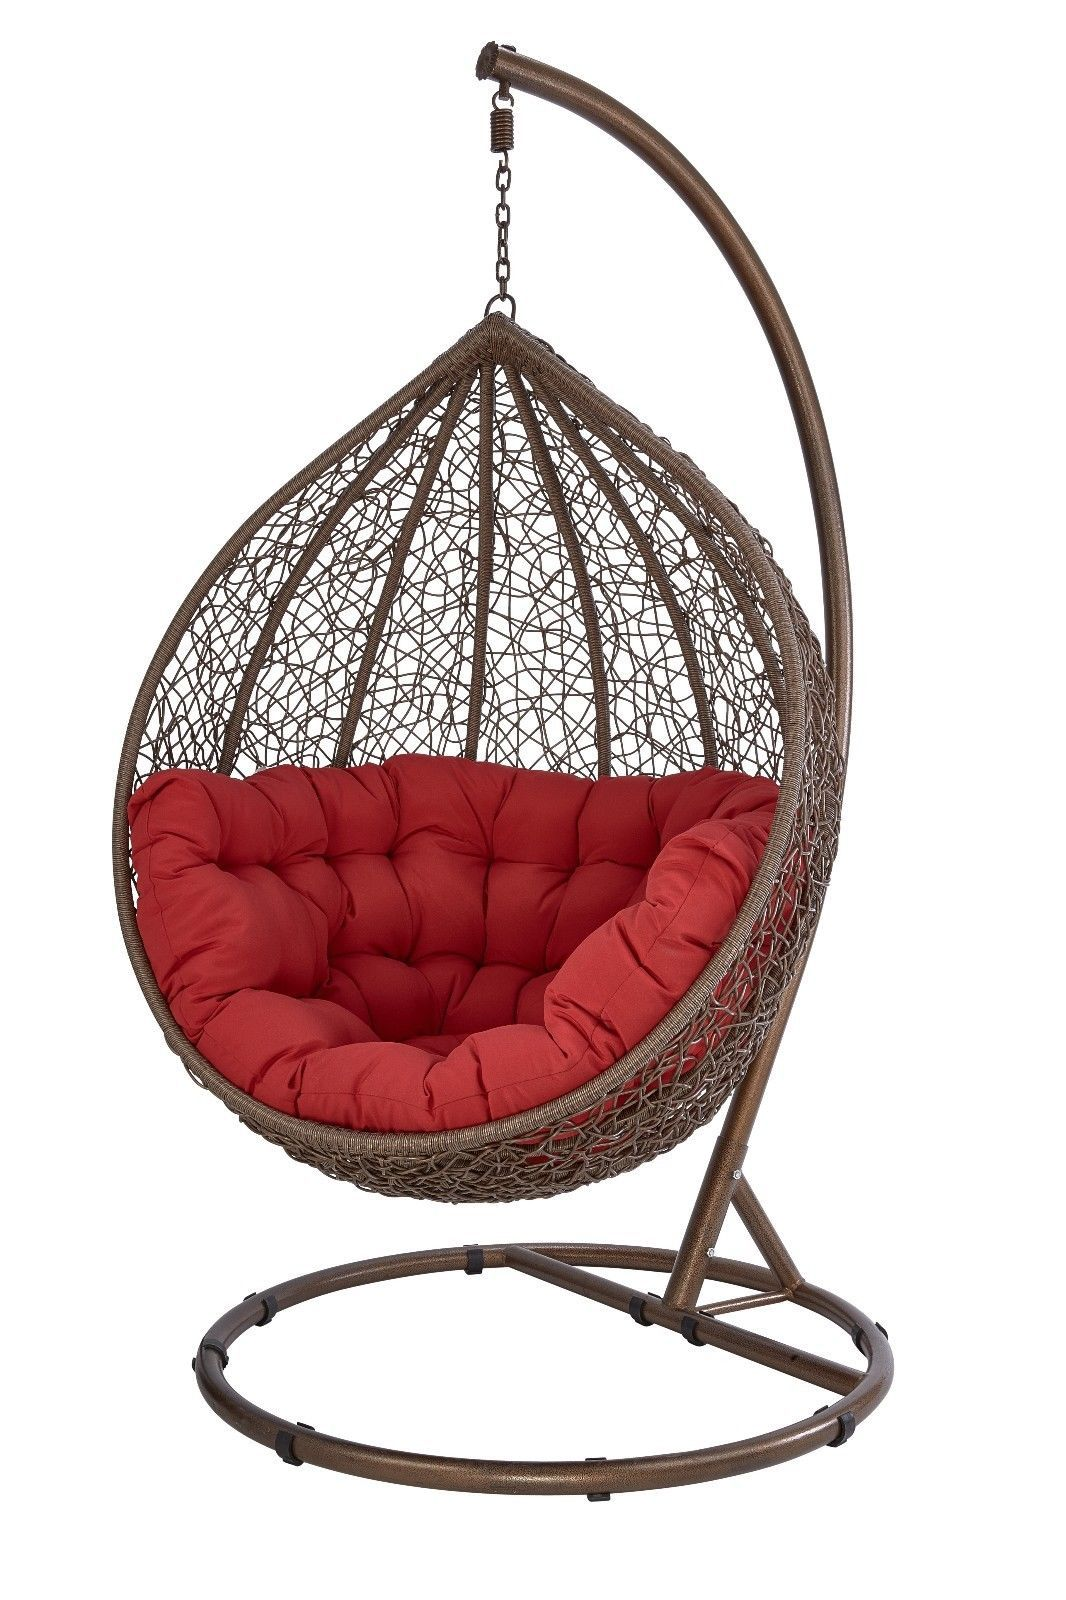 $330; Casa Hanging Swing Chair. GREAT DEALS: In Some Cases Youu0027ll Find  Deals Of 20 30% Off The Original Price. But Remember, What You See Is What  We Have.